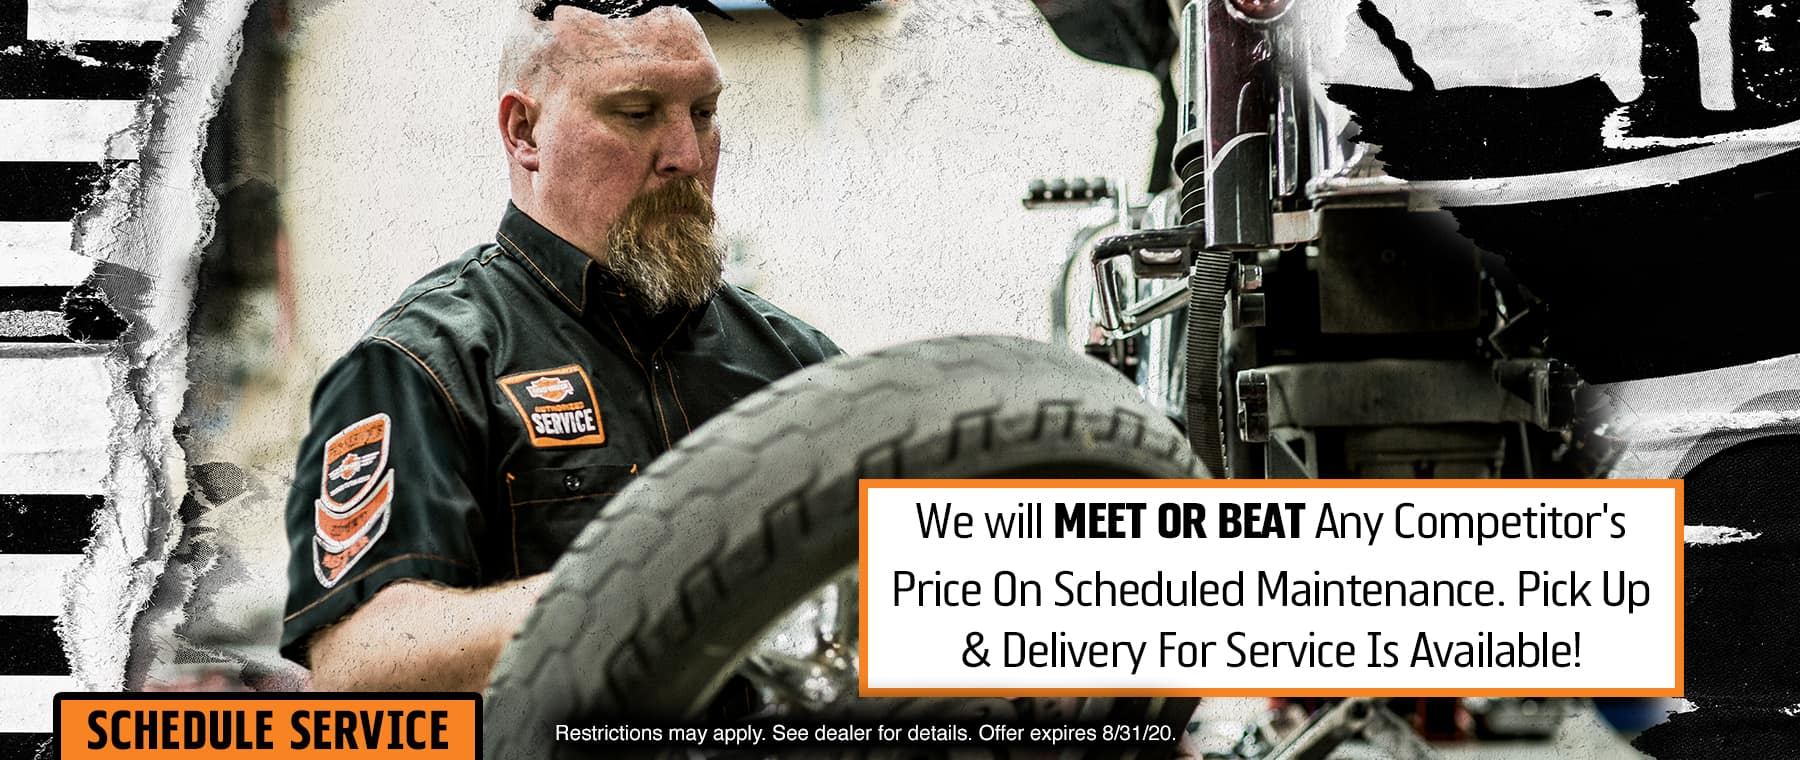 Meet or Beat Any Competitor's Price on Scheduled Maintenance!